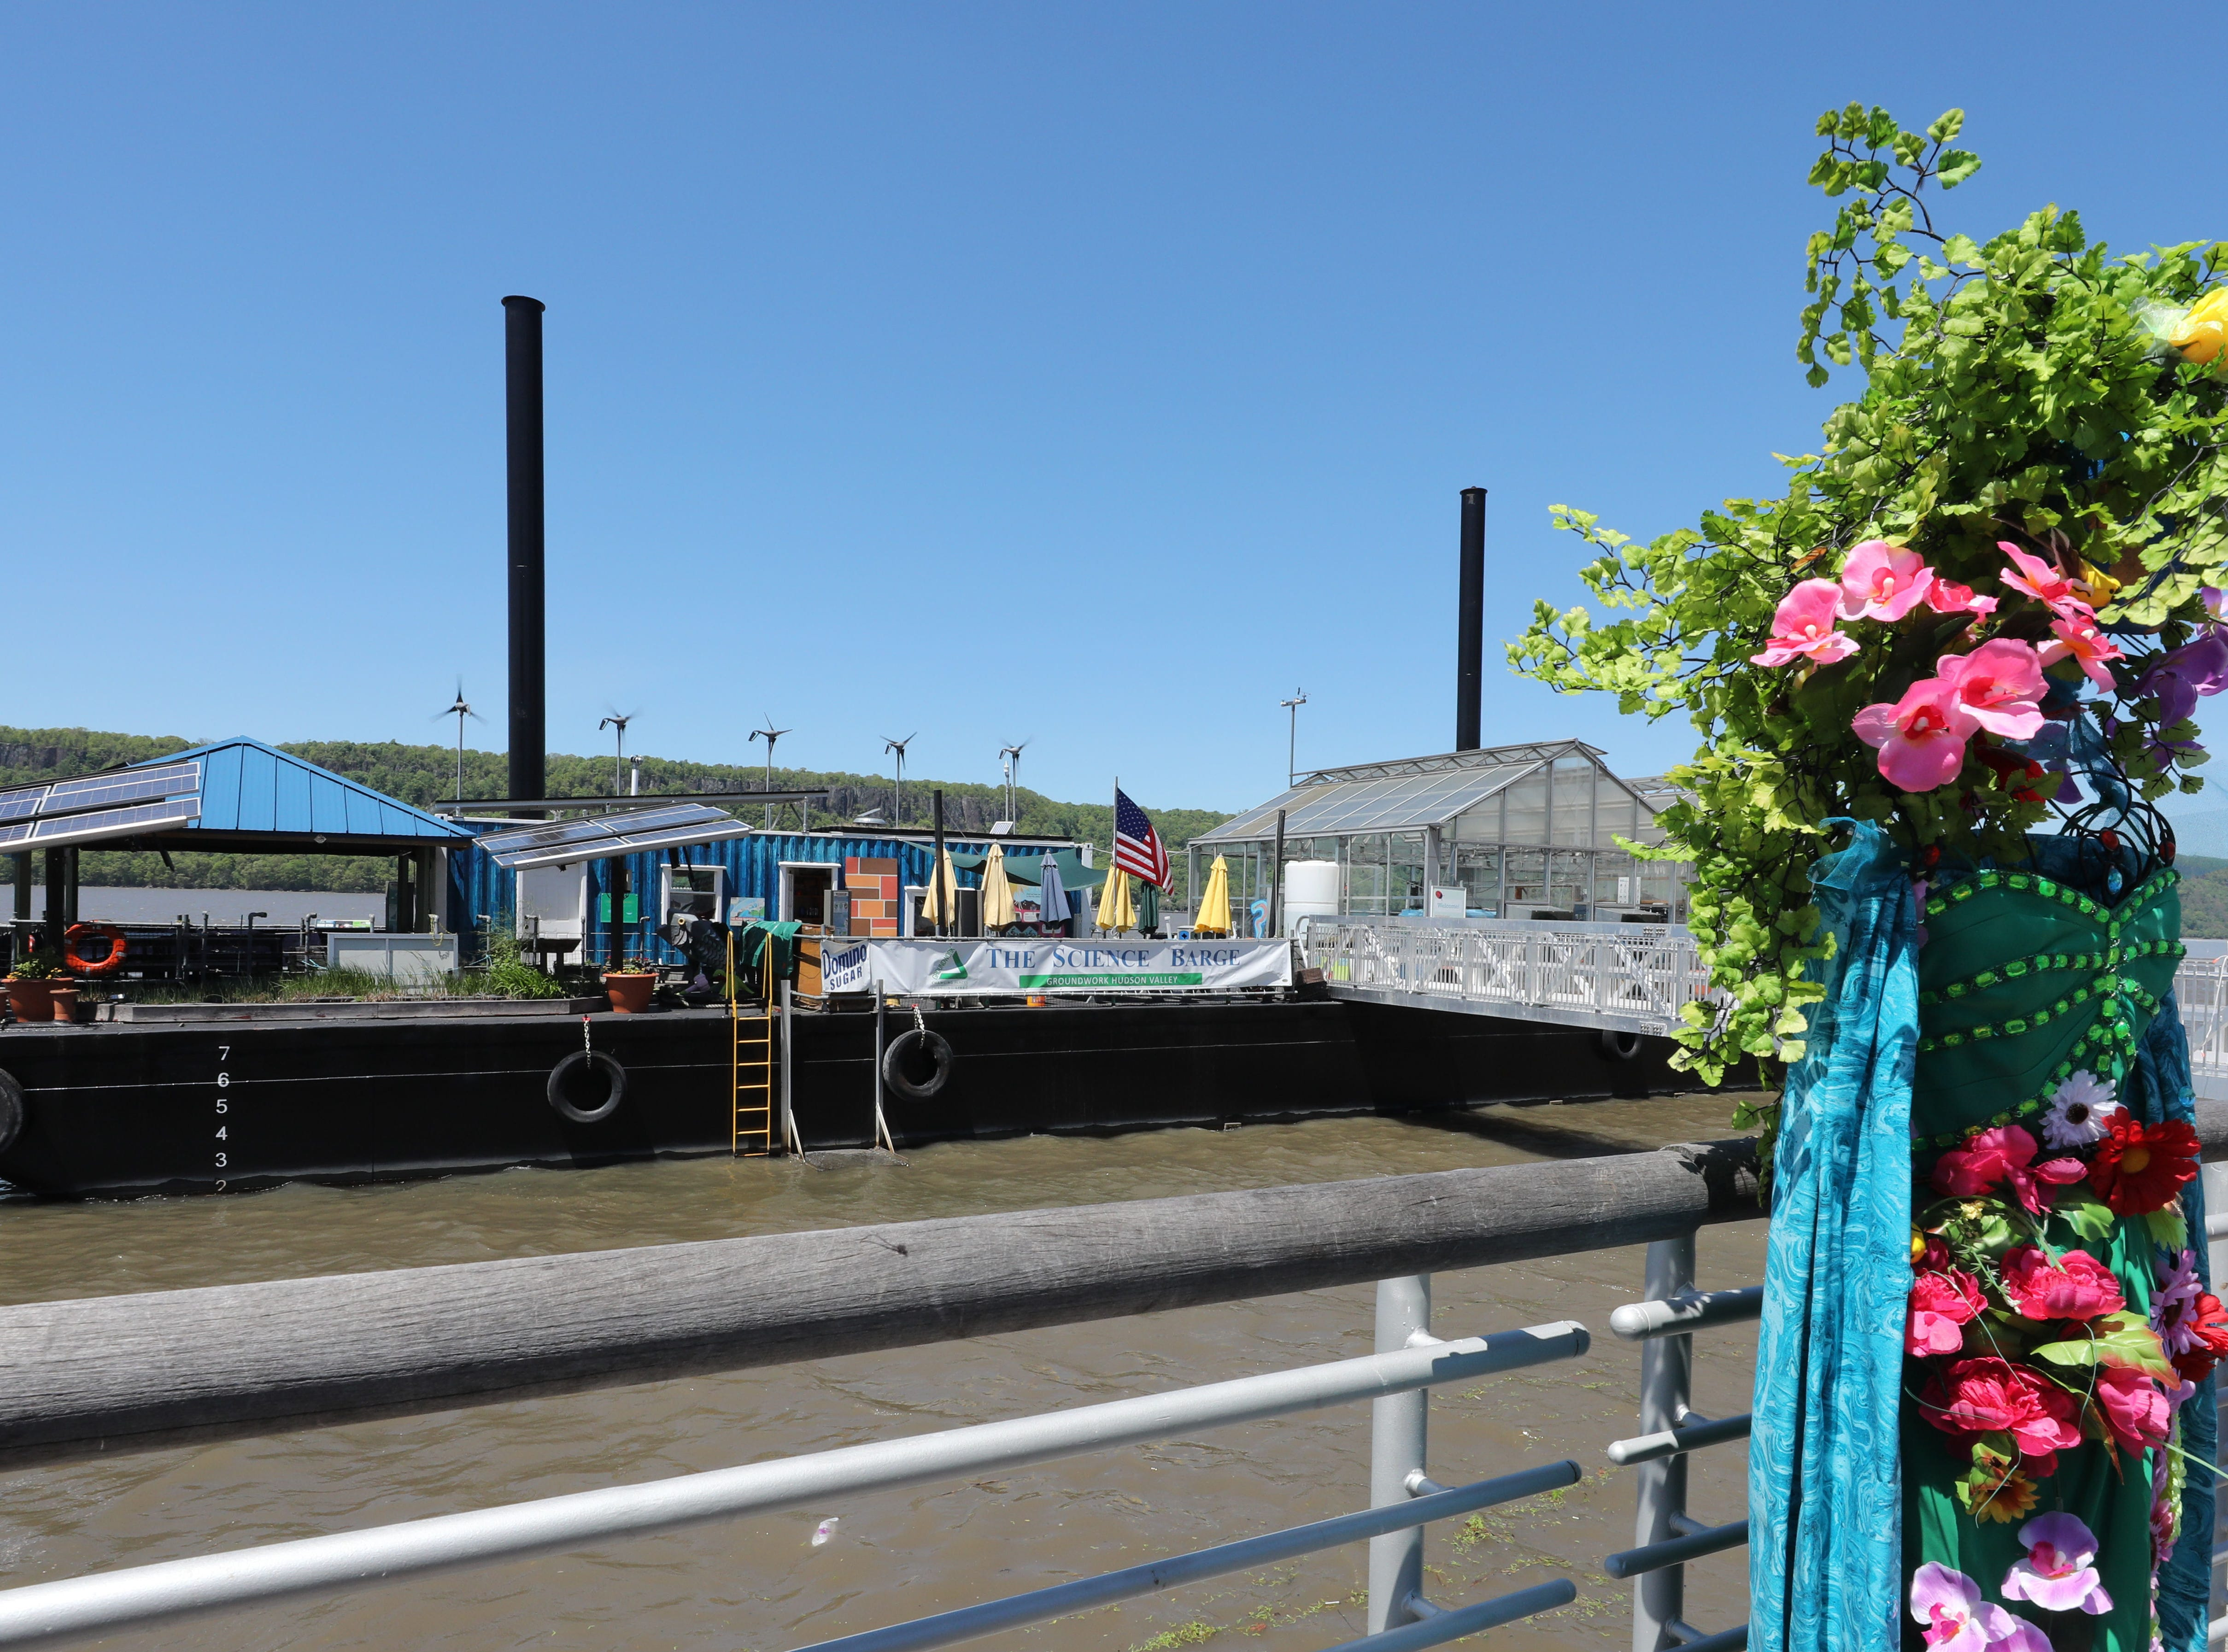 The Science Barge is pictured during its 11th annual opening on the Hudson River in Yonkers, May 11, 2019. The floating environmental education center  has undergone an almost $1million enhancement, completed over the past two years.